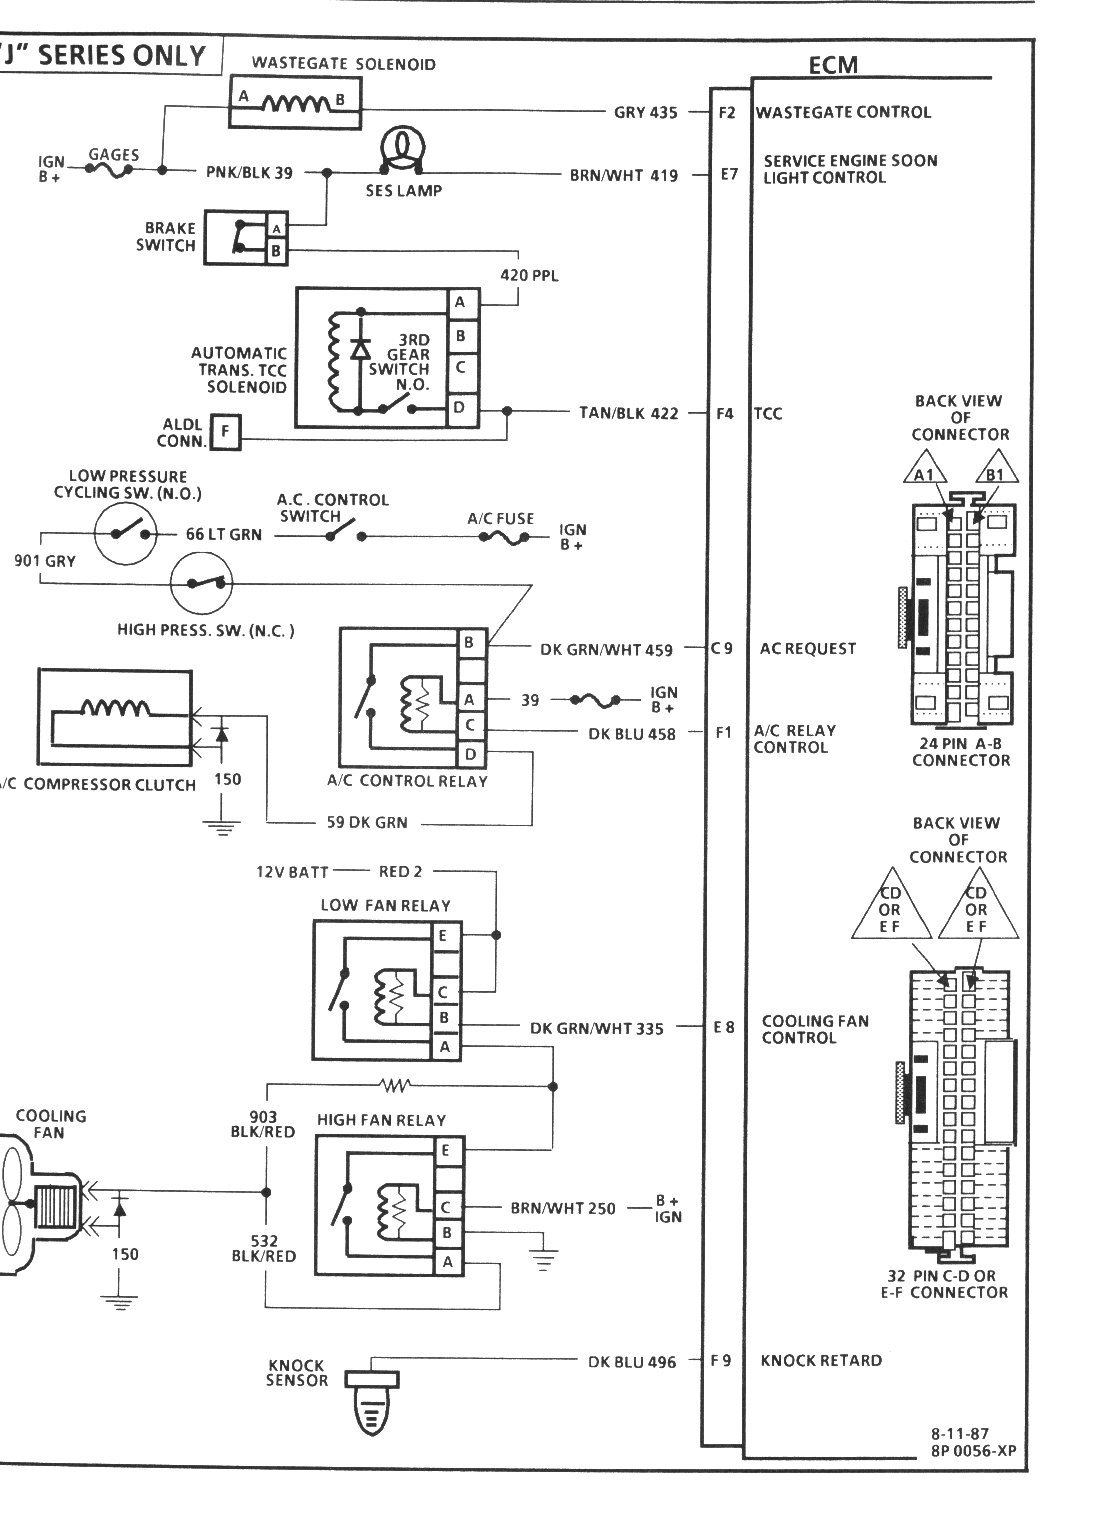 ... awesome ddec ii wiring diagram picture collection best images for rh  oursweetbakeshop info Series 60 ECM